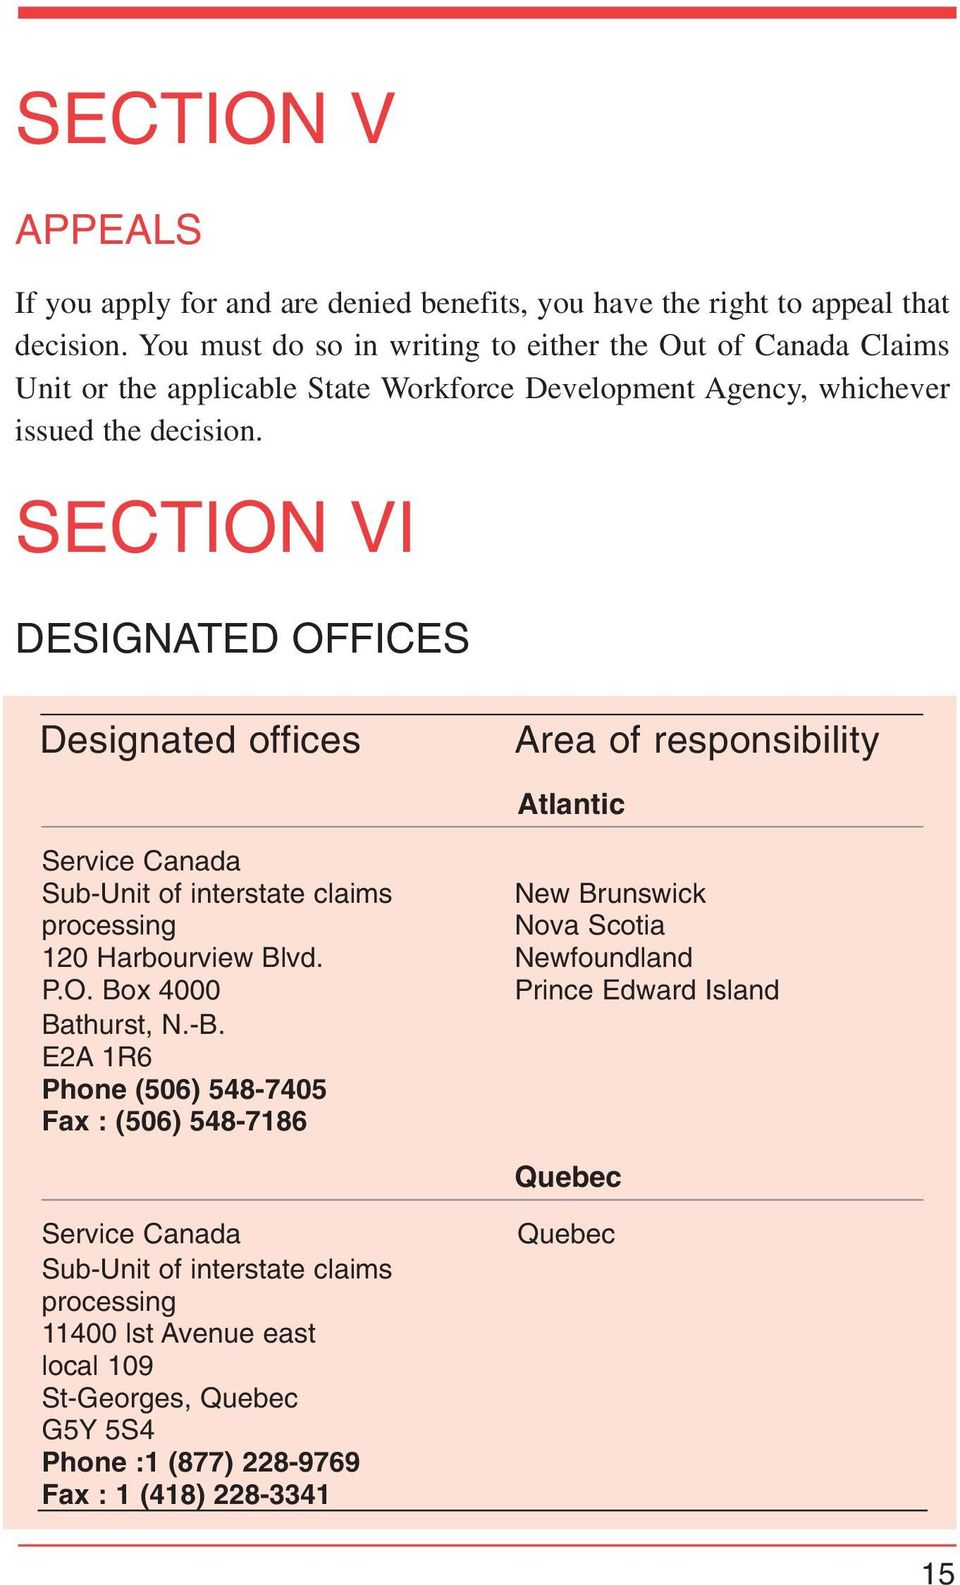 SECTION VI DESIGNATED OFFICES Designated offices Area of responsibility Atlantic Service Canada Sub-Unit of interstate claims New Brunswick processing Nova Scotia 120 Harbourview